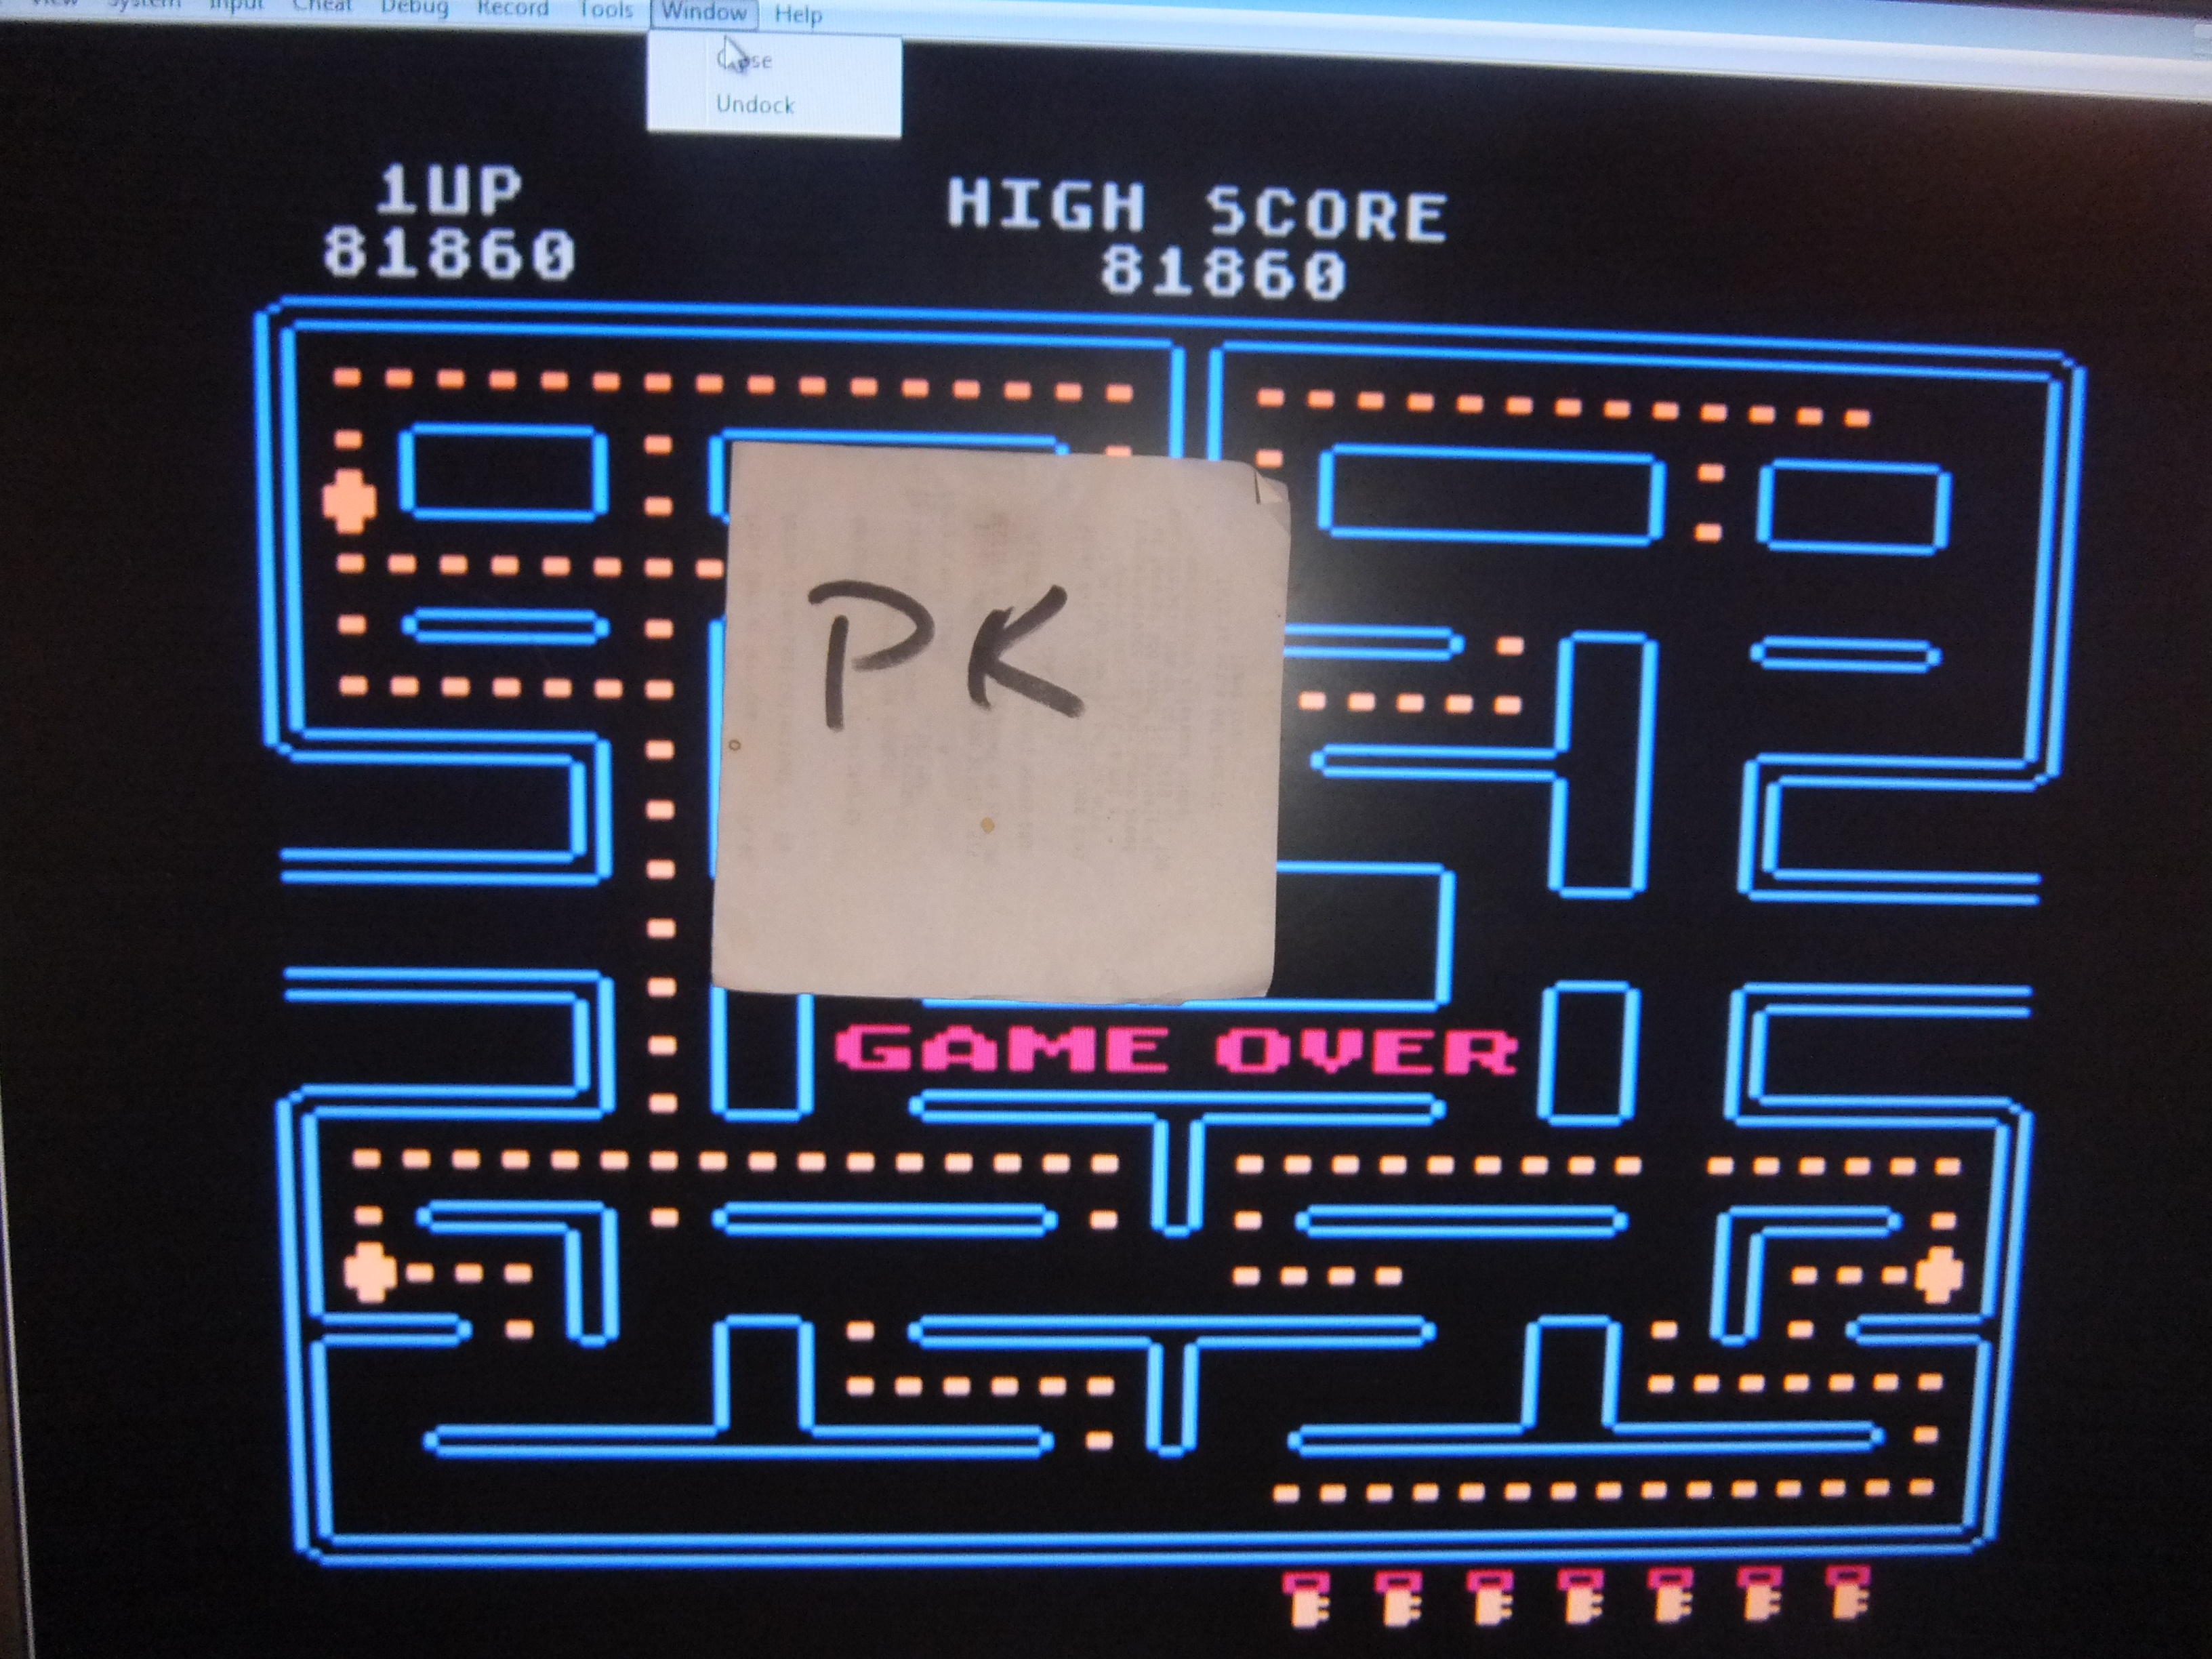 kernzy: Pac-Man [Key Start] (Atari 400/800/XL/XE Emulated) 81,860 points on 2015-10-14 19:22:38